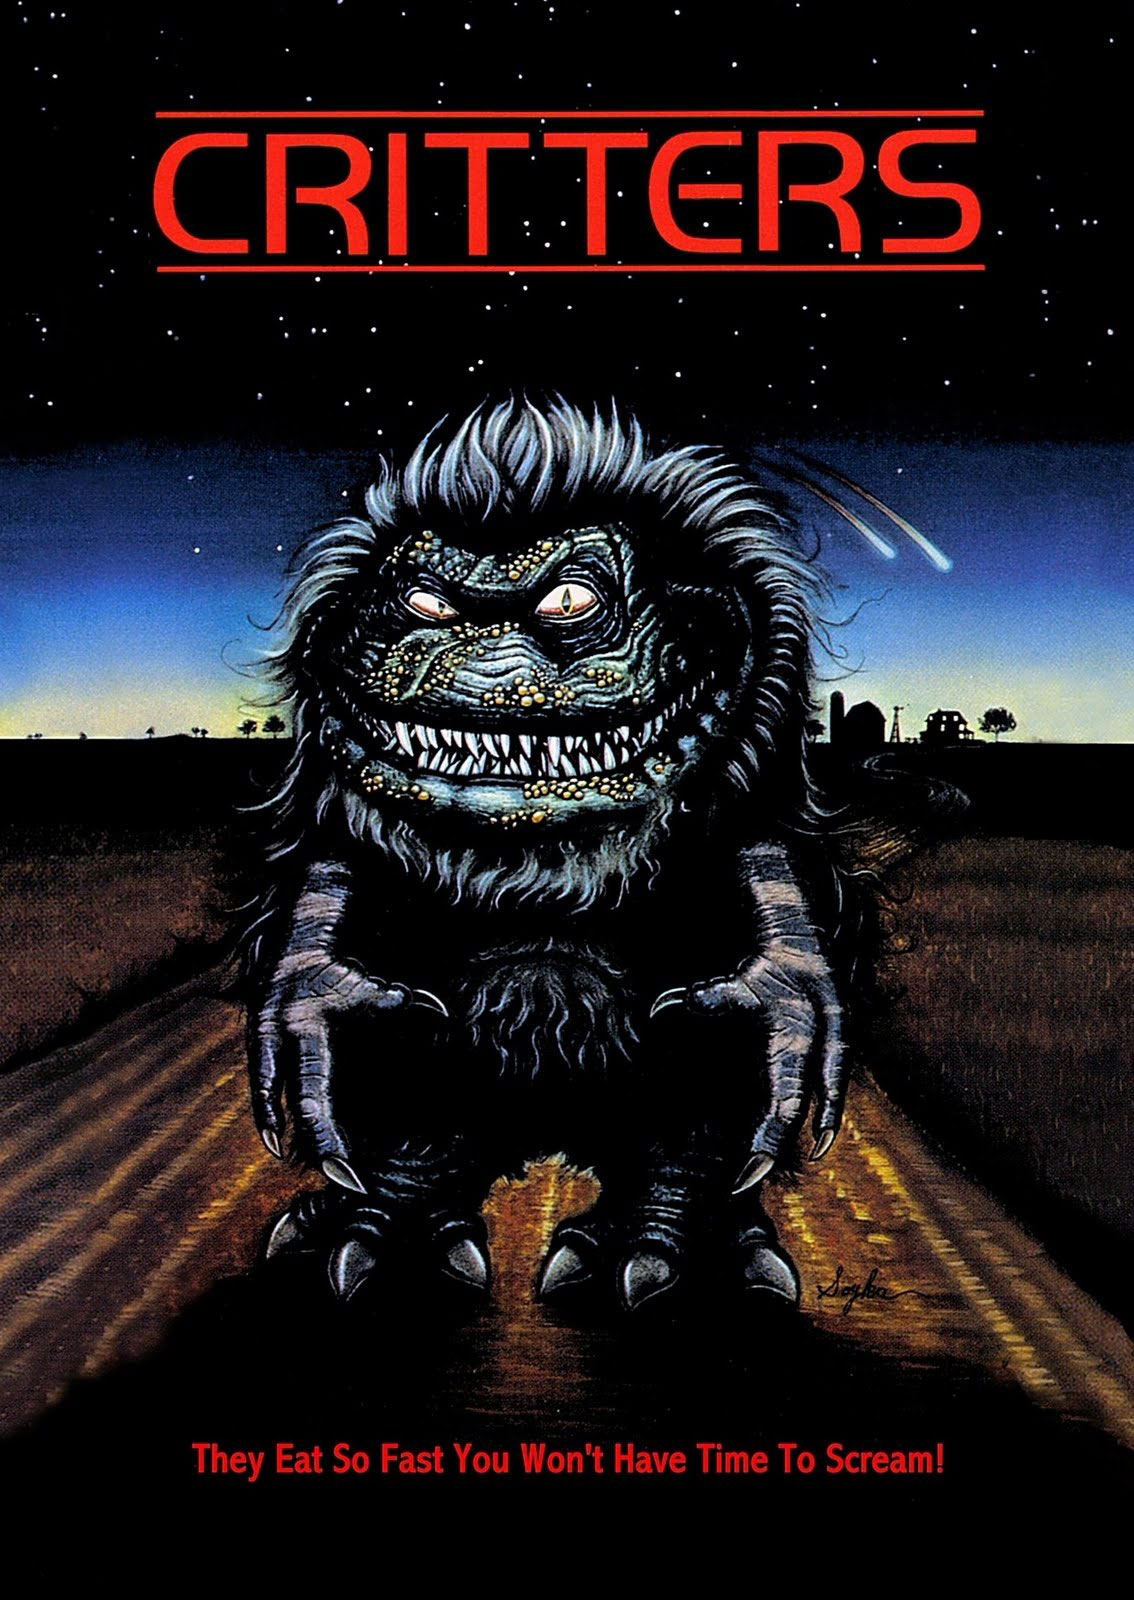 critters - Critters Ready to Bite Back